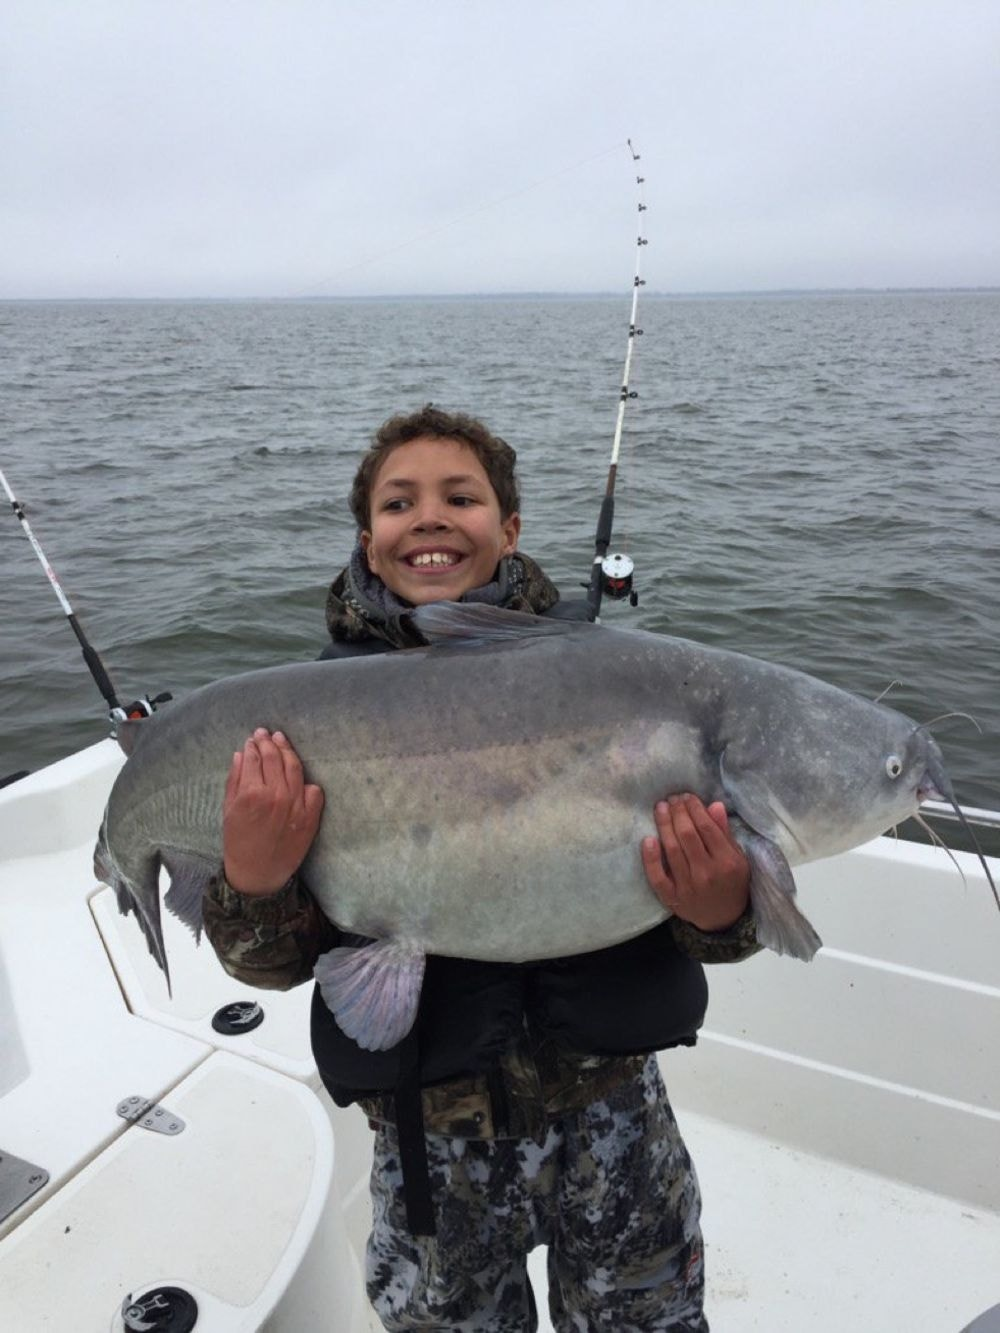 10-year-old angler catches potential world-record catfish